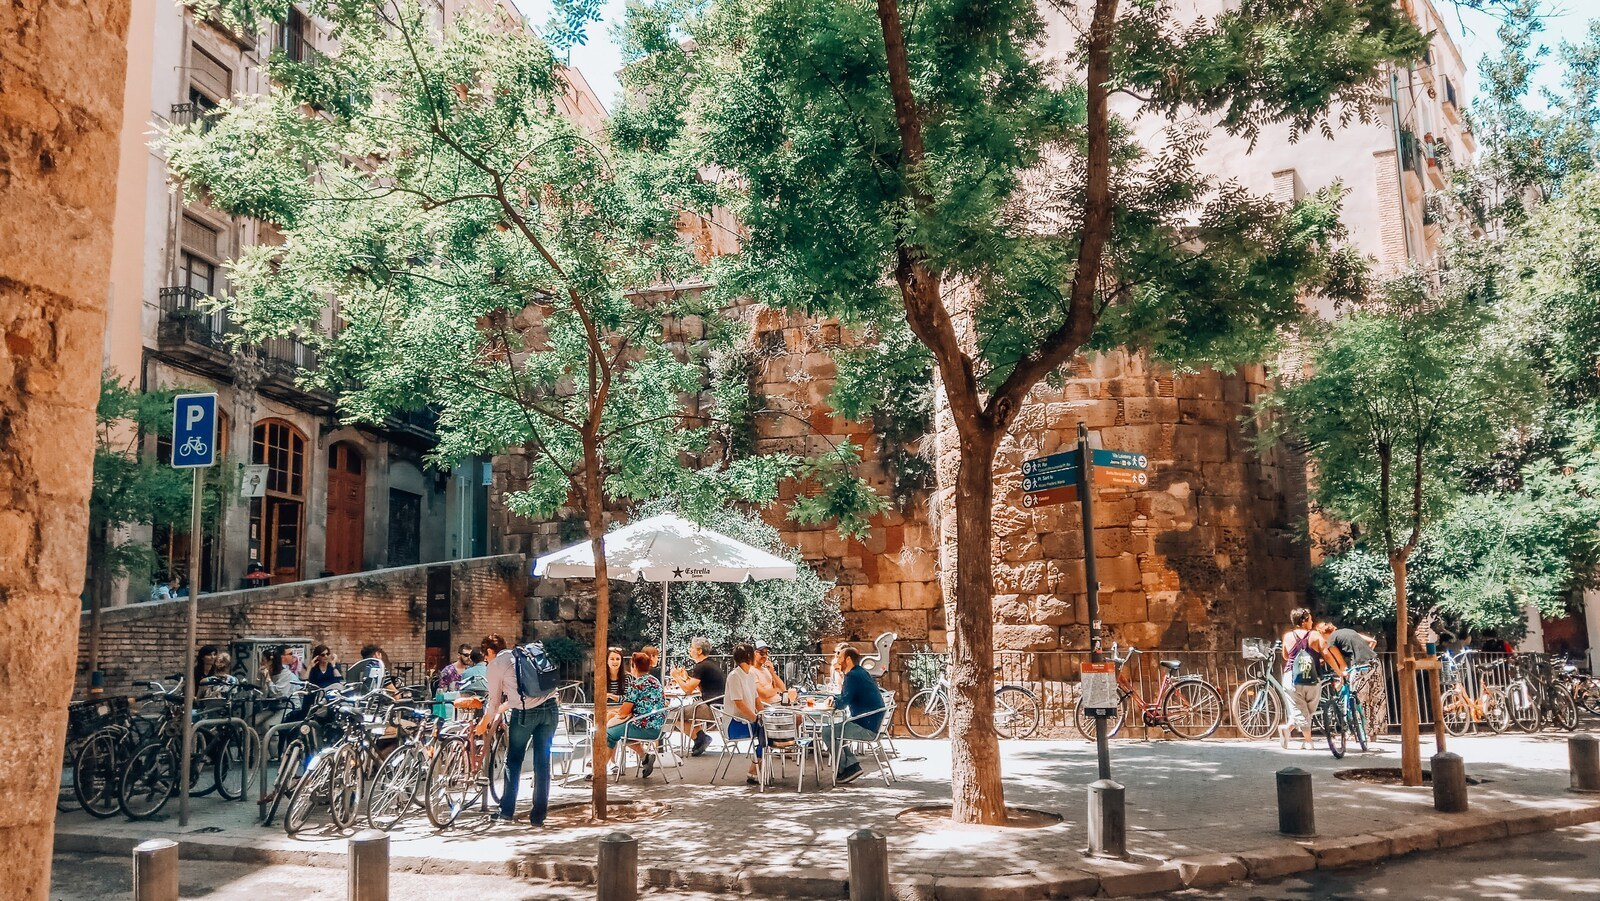 Explore Barcelona by Foot